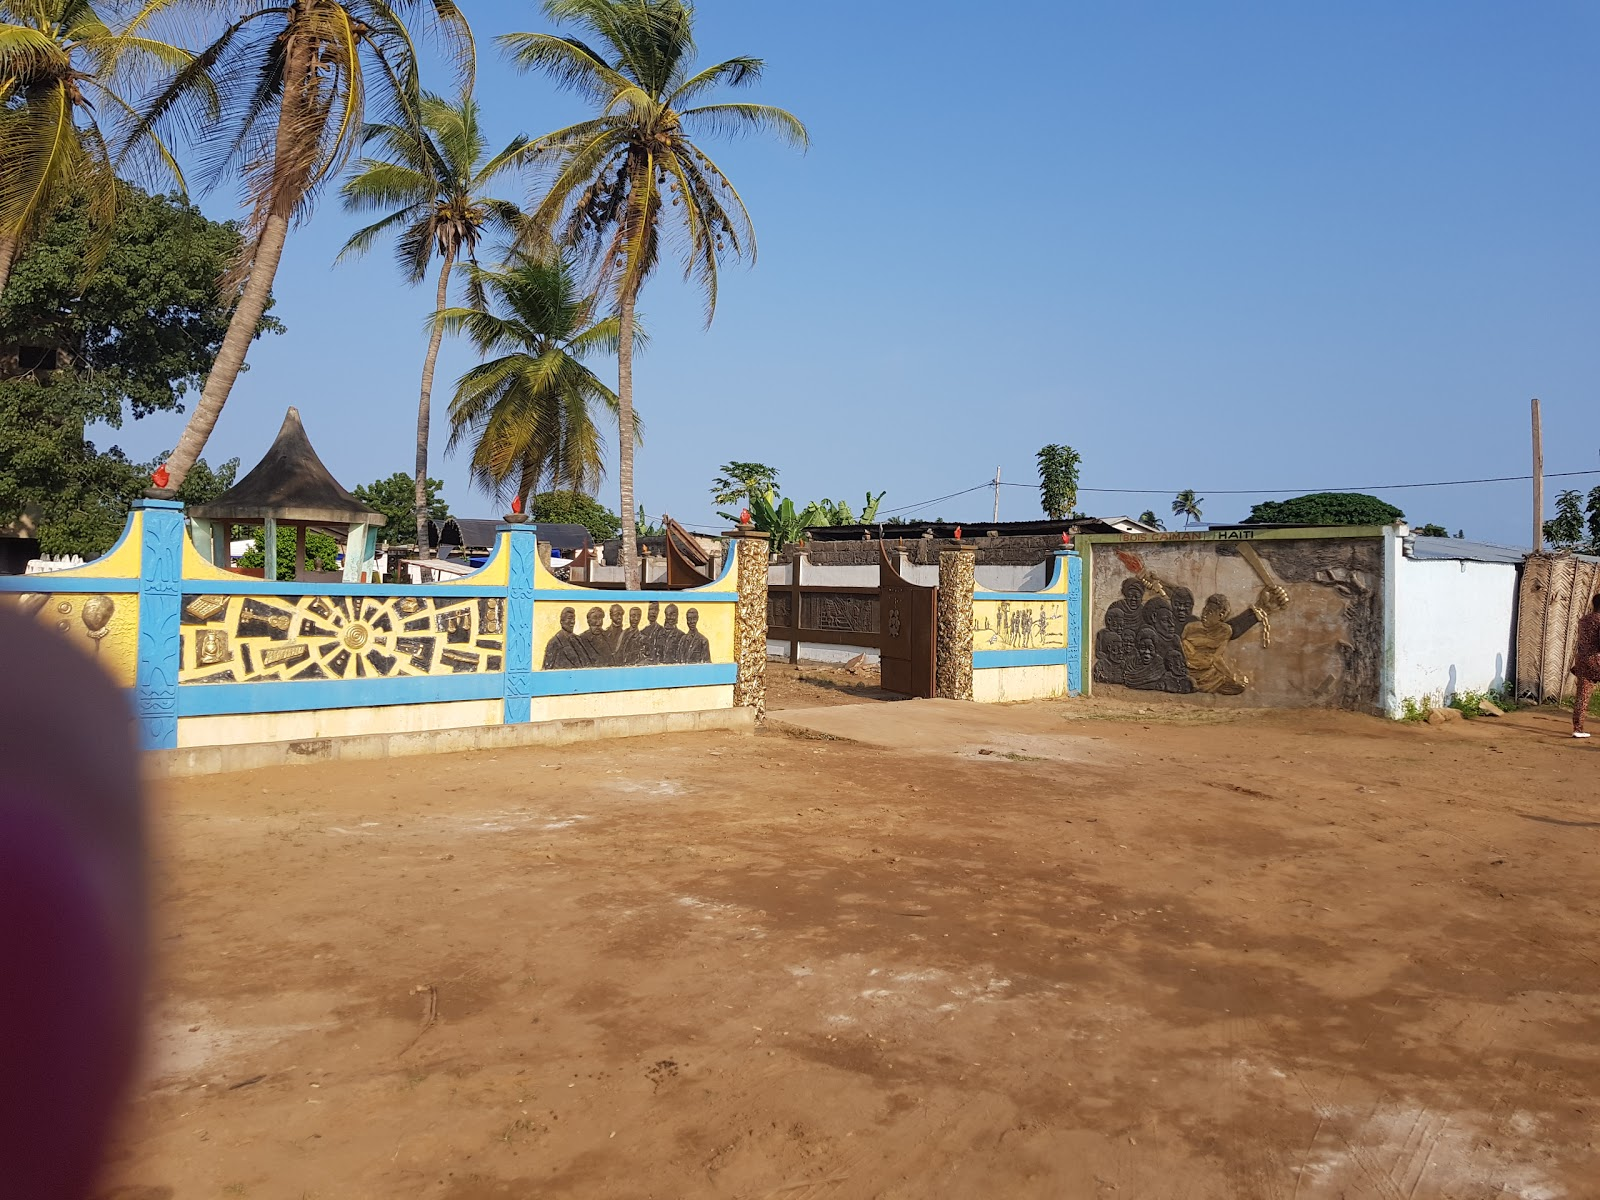 Visit Temple des Pythons on your trip to Ouidah or Benin